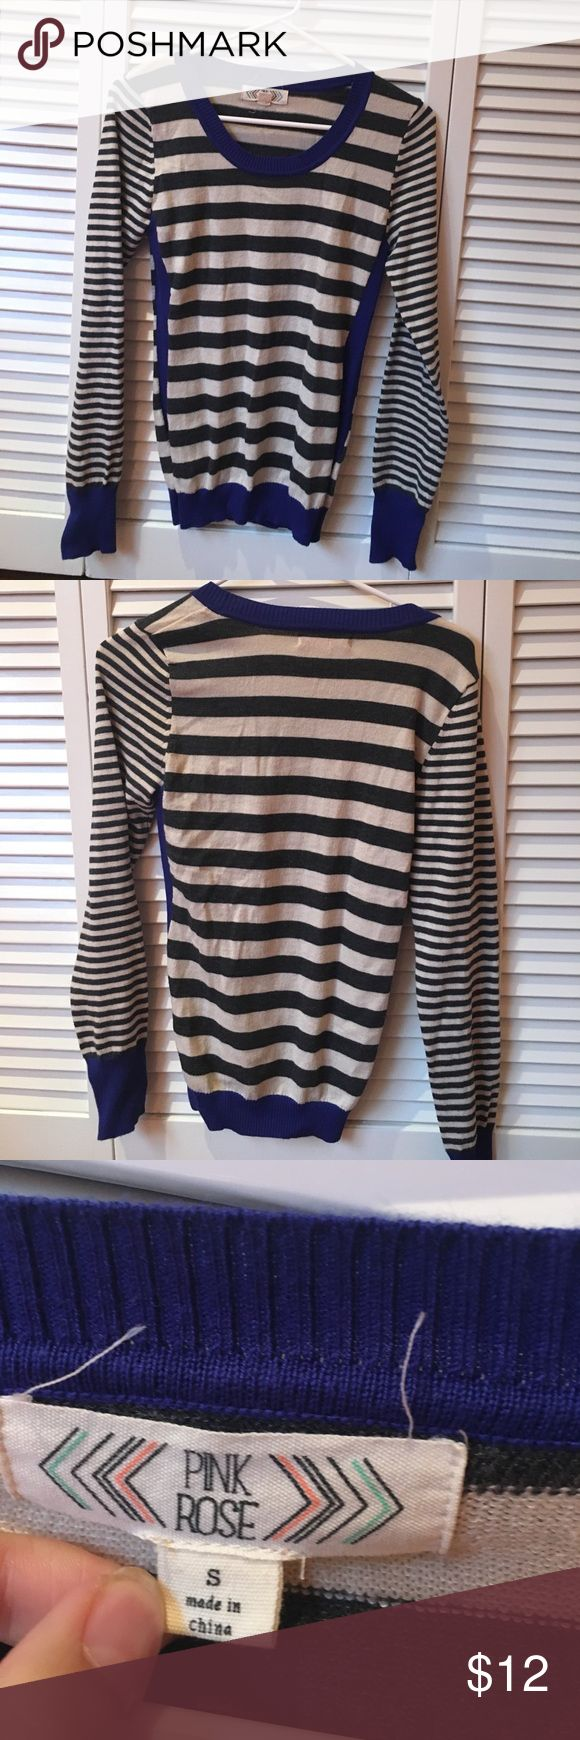 pink rose juniors sweater Blue, black, and white striped sweater. In good condition and is stretchy. This light sweater is perfect for a chilly summer night or even a fall day! Pink Rose Tops Blouses